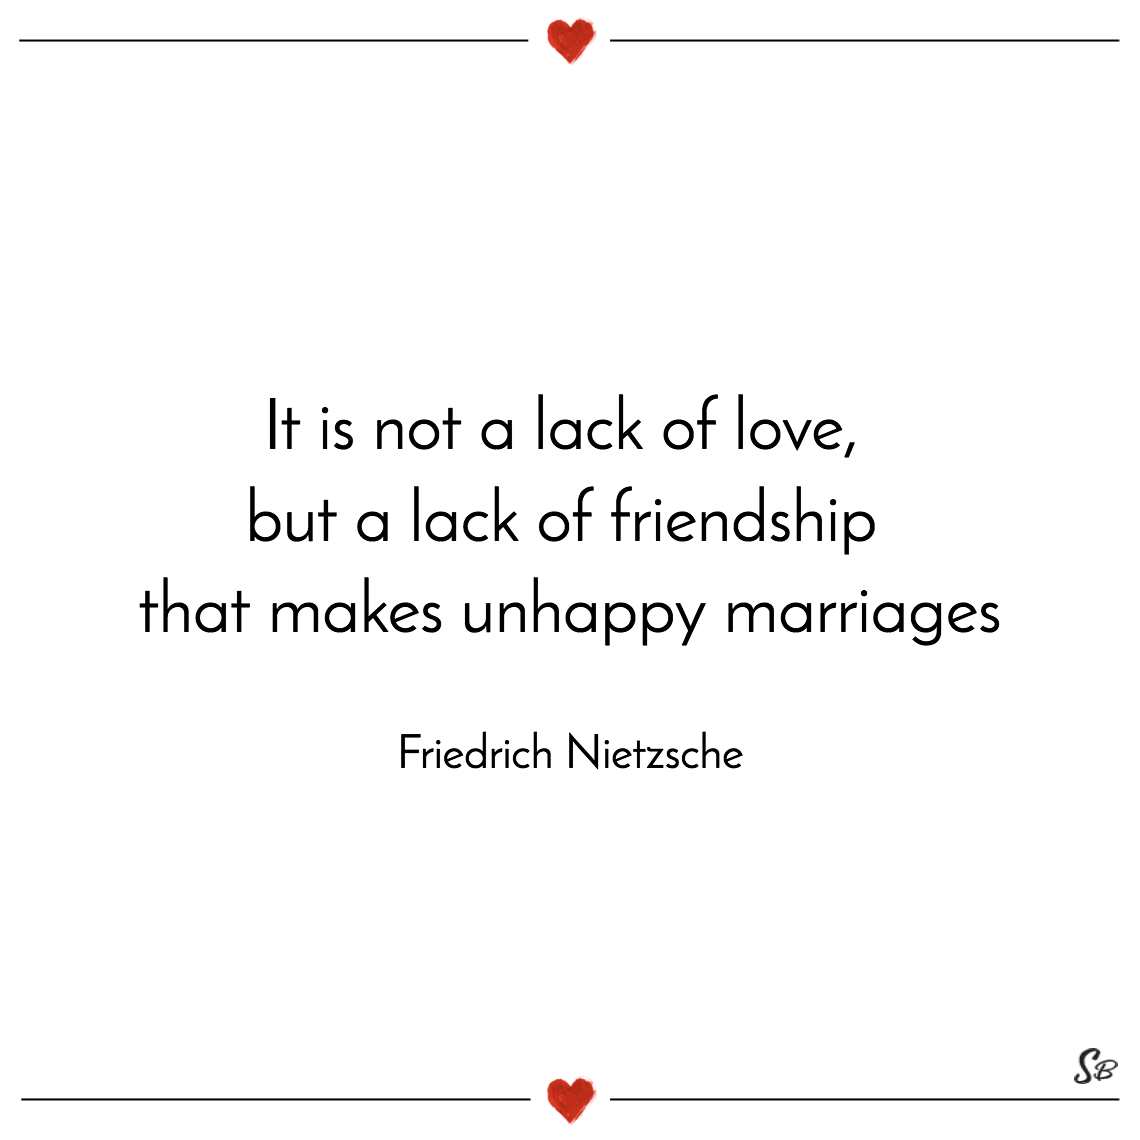 Quotes About Love And Friendship Entrancing 31 Beautiful Marriage Quotes About Love And Friendship  Spirit Button